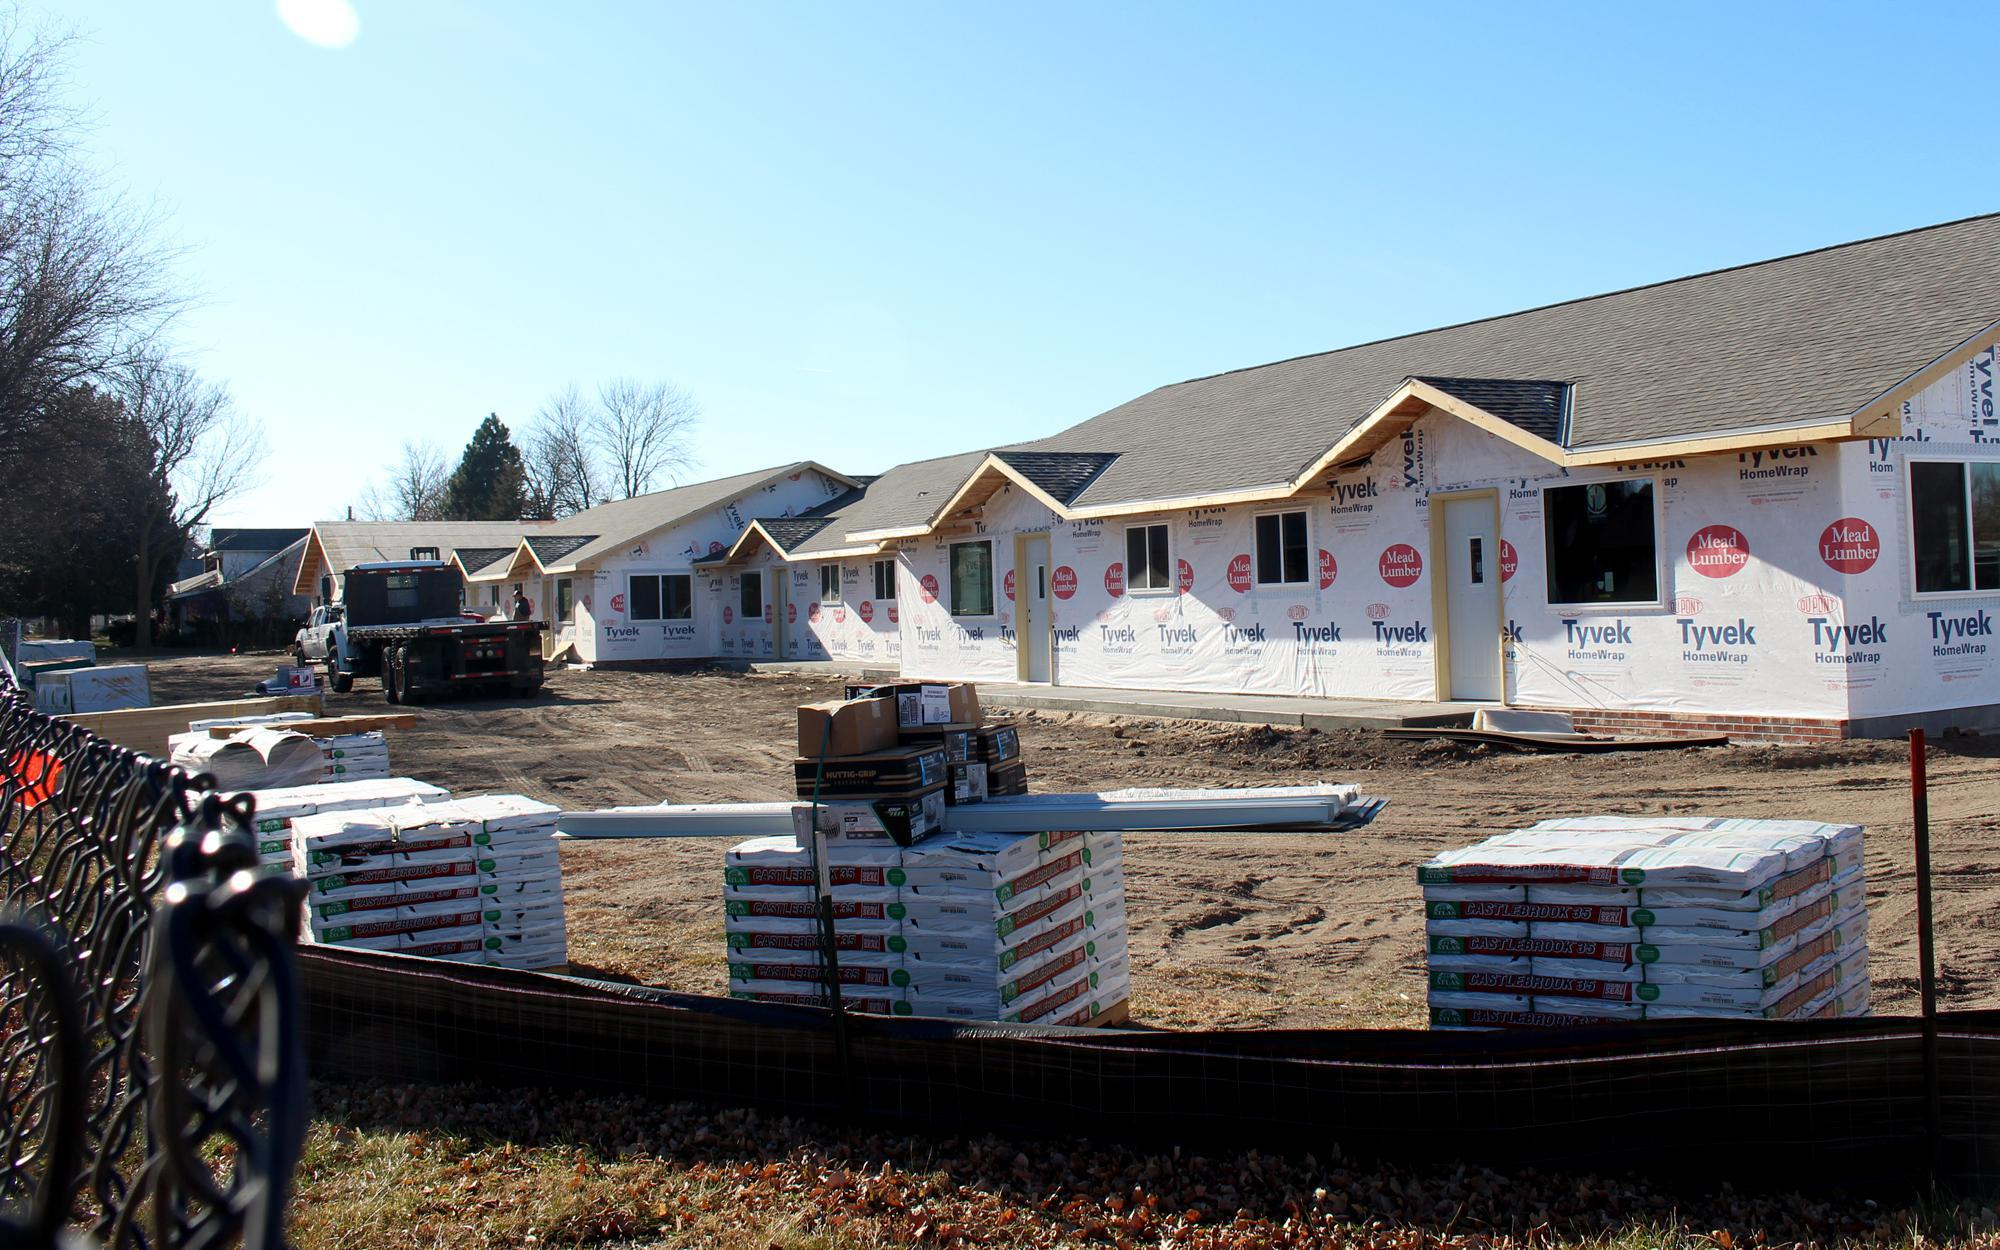 New apartments are being built in Holdrege